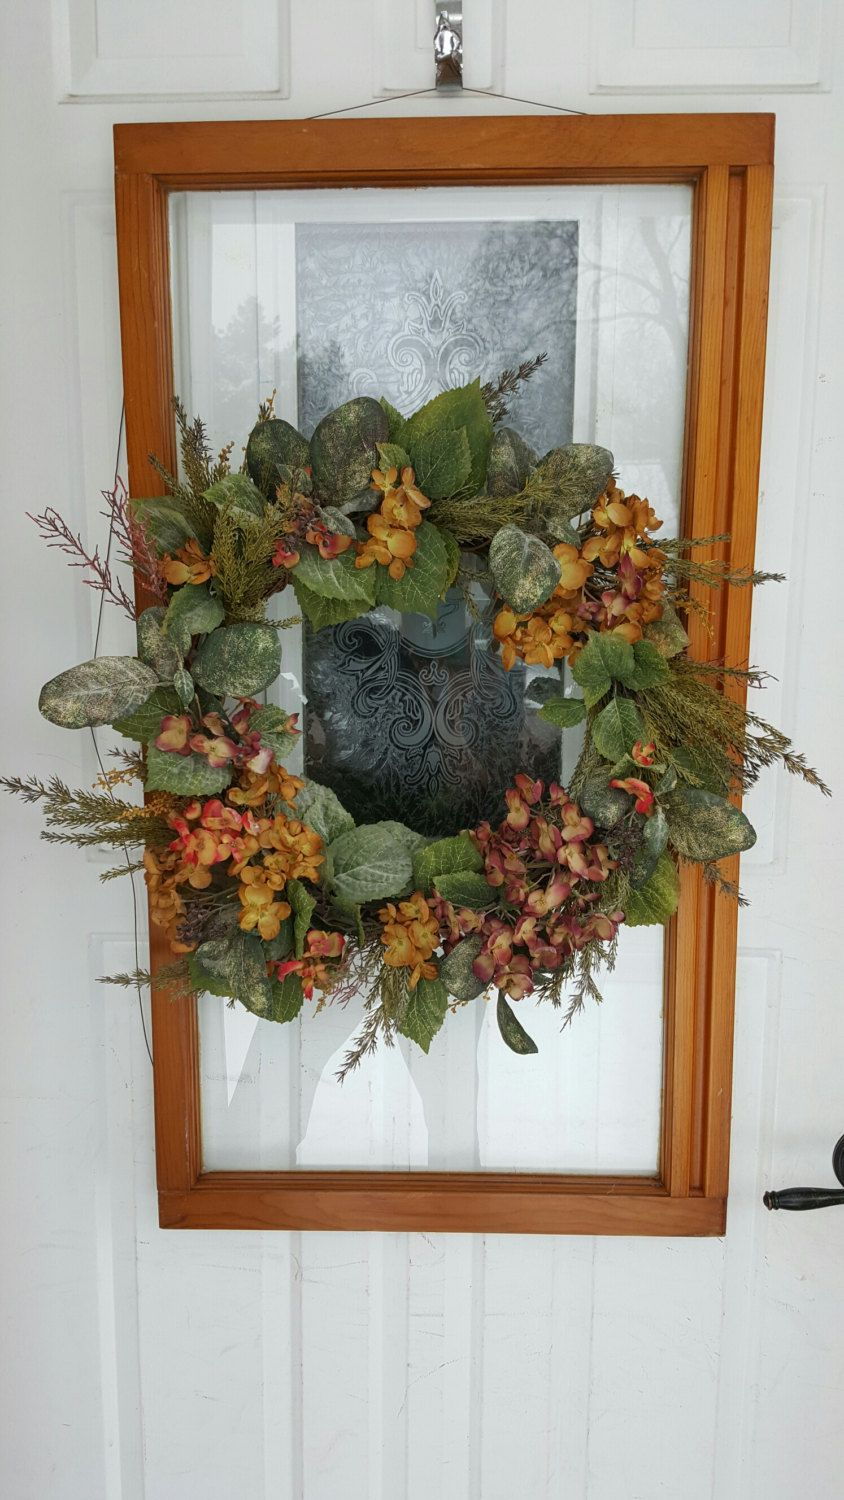 Rustic Window Pane With Gentle Pastel Natural Floral inside Old Rustic Barn Window Frame (Image 25 of 30)